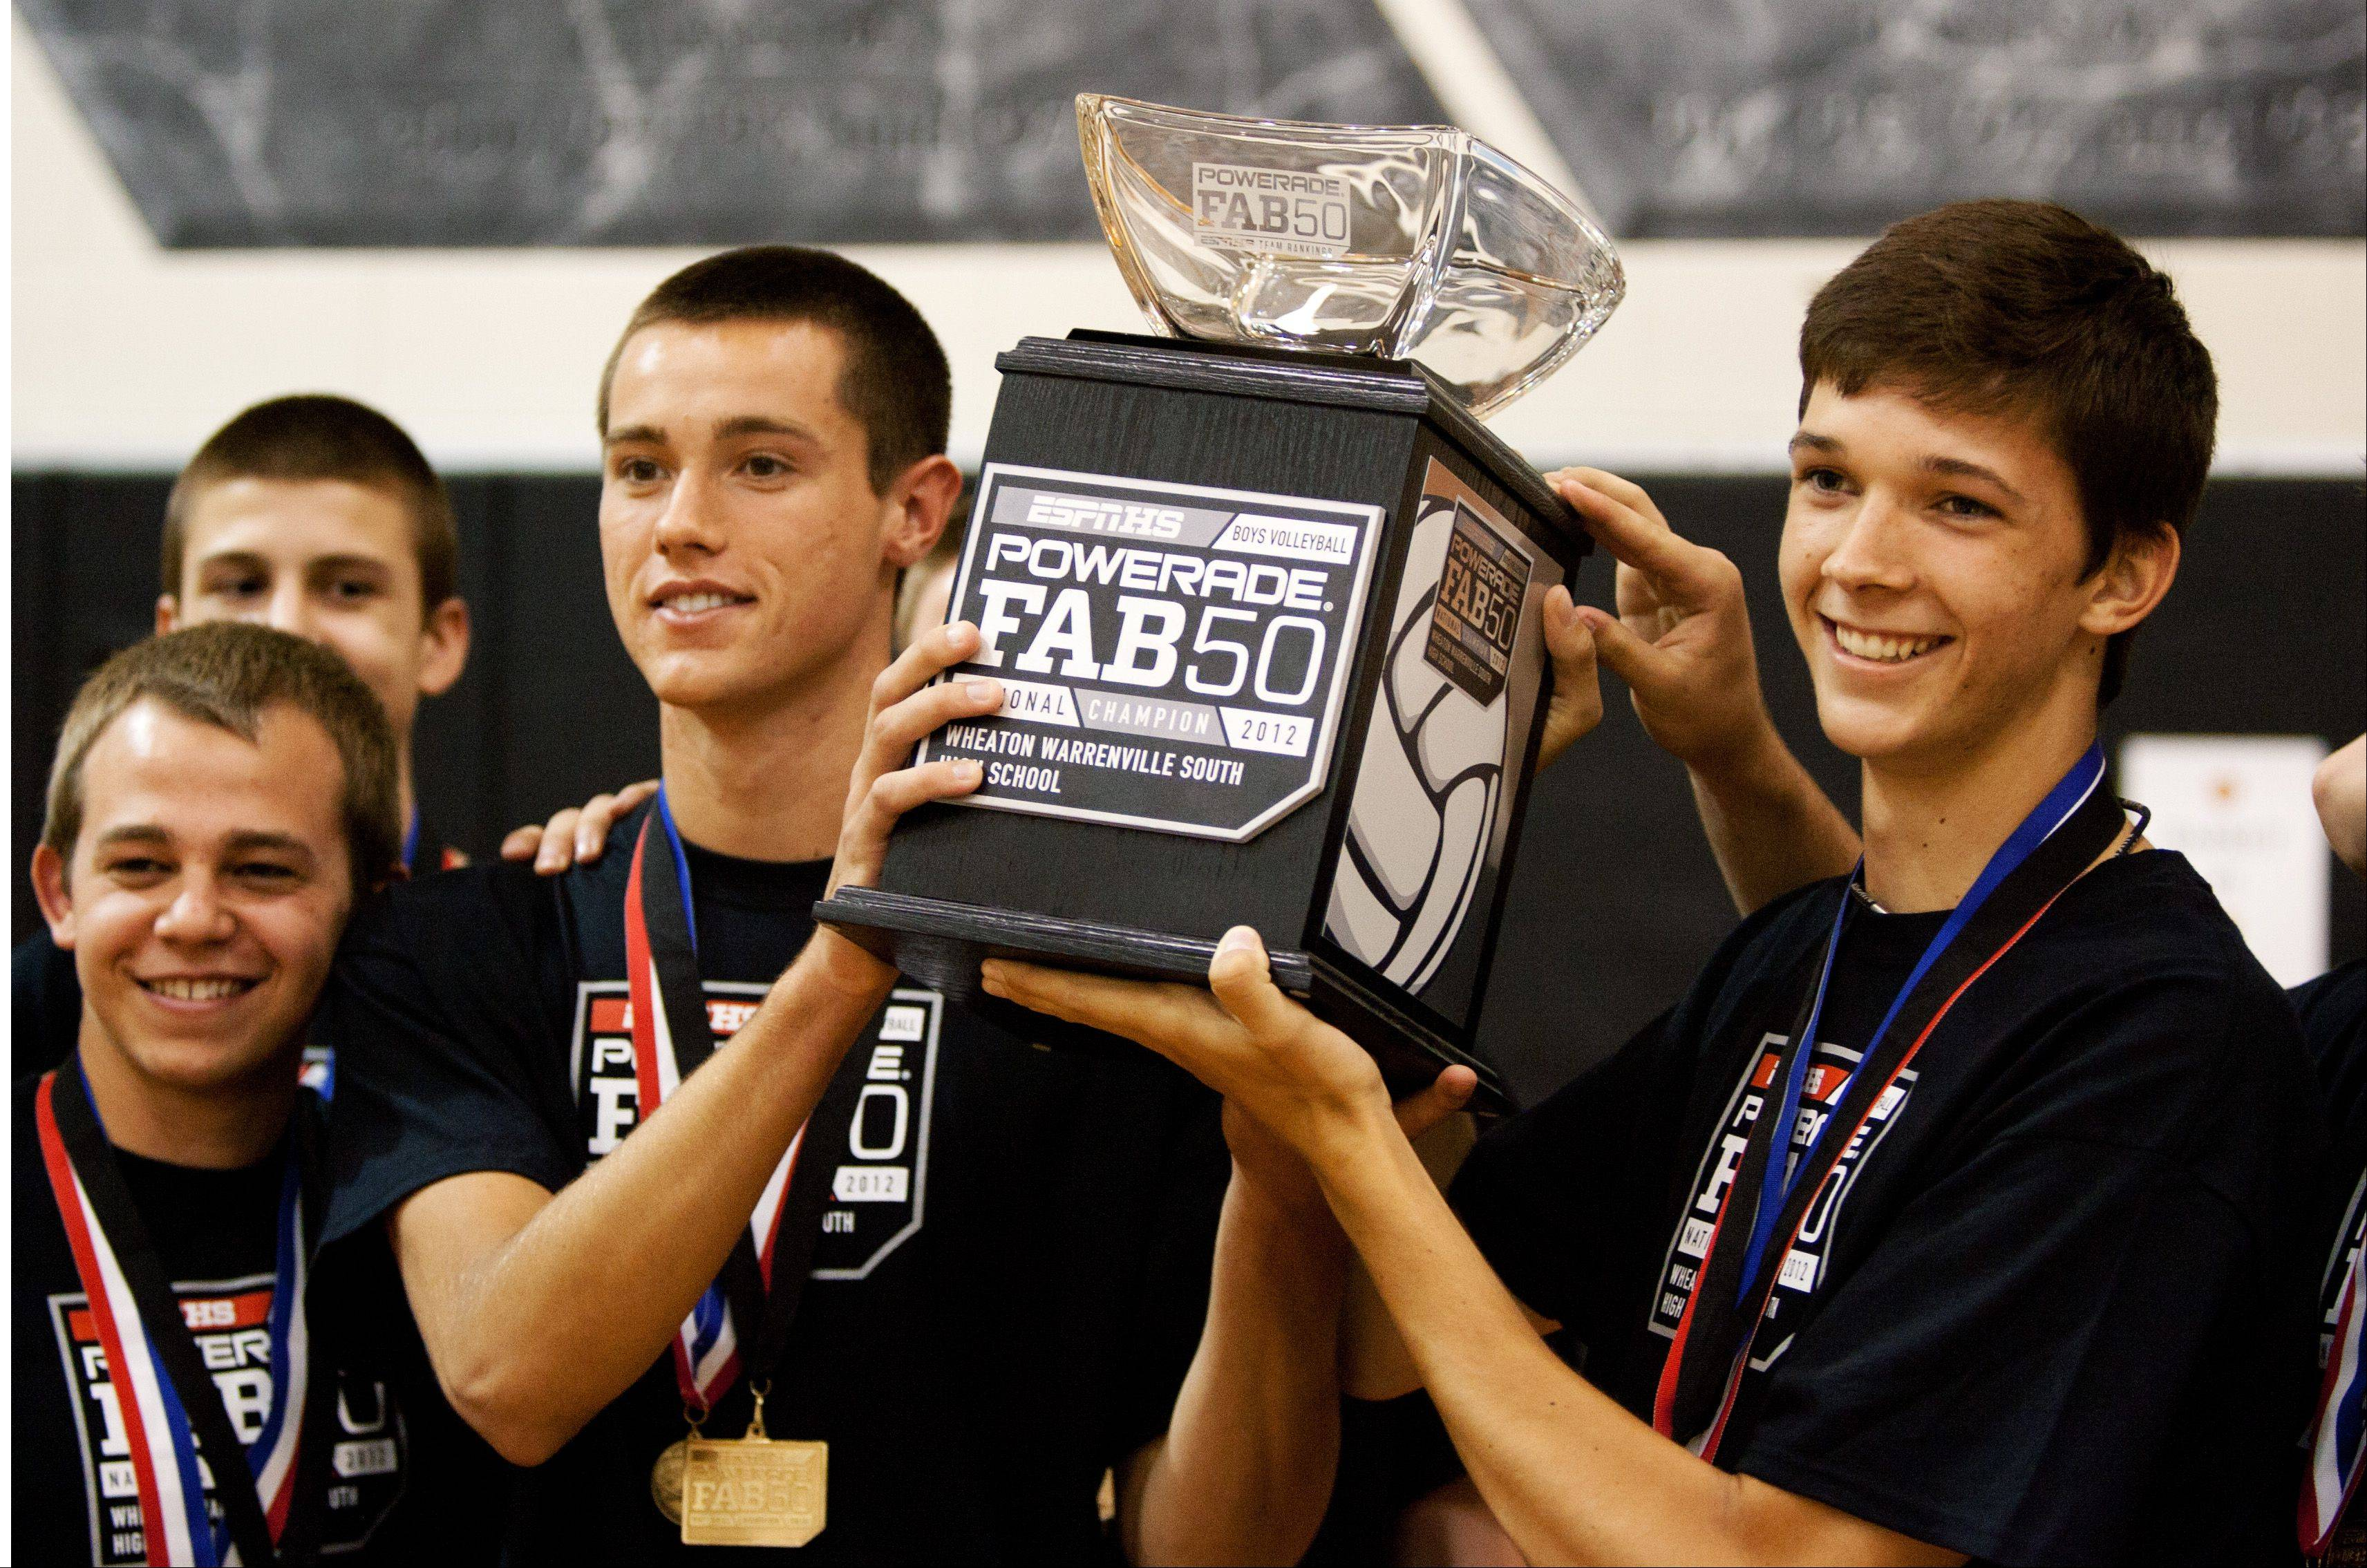 Thomas Jaeschke, left, and Matt Callaway raise the Powerade Fab 50 Trophy presented to them by ESPNHS.